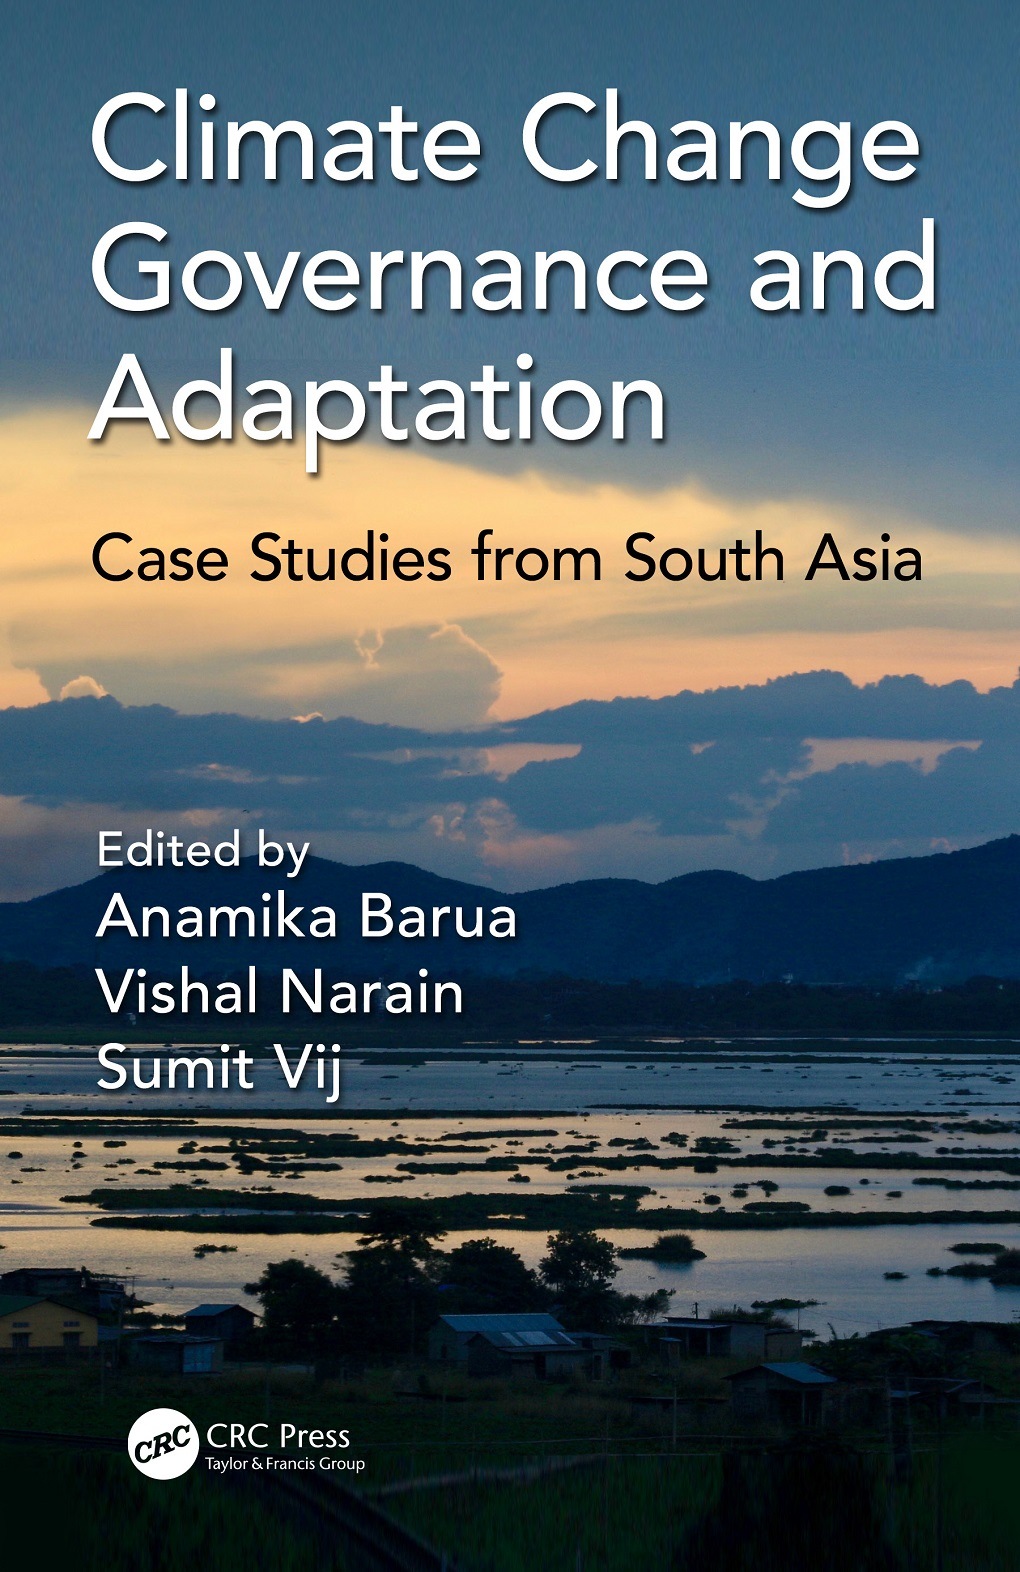 climate change governance and adaptation, case studies from South Asia.